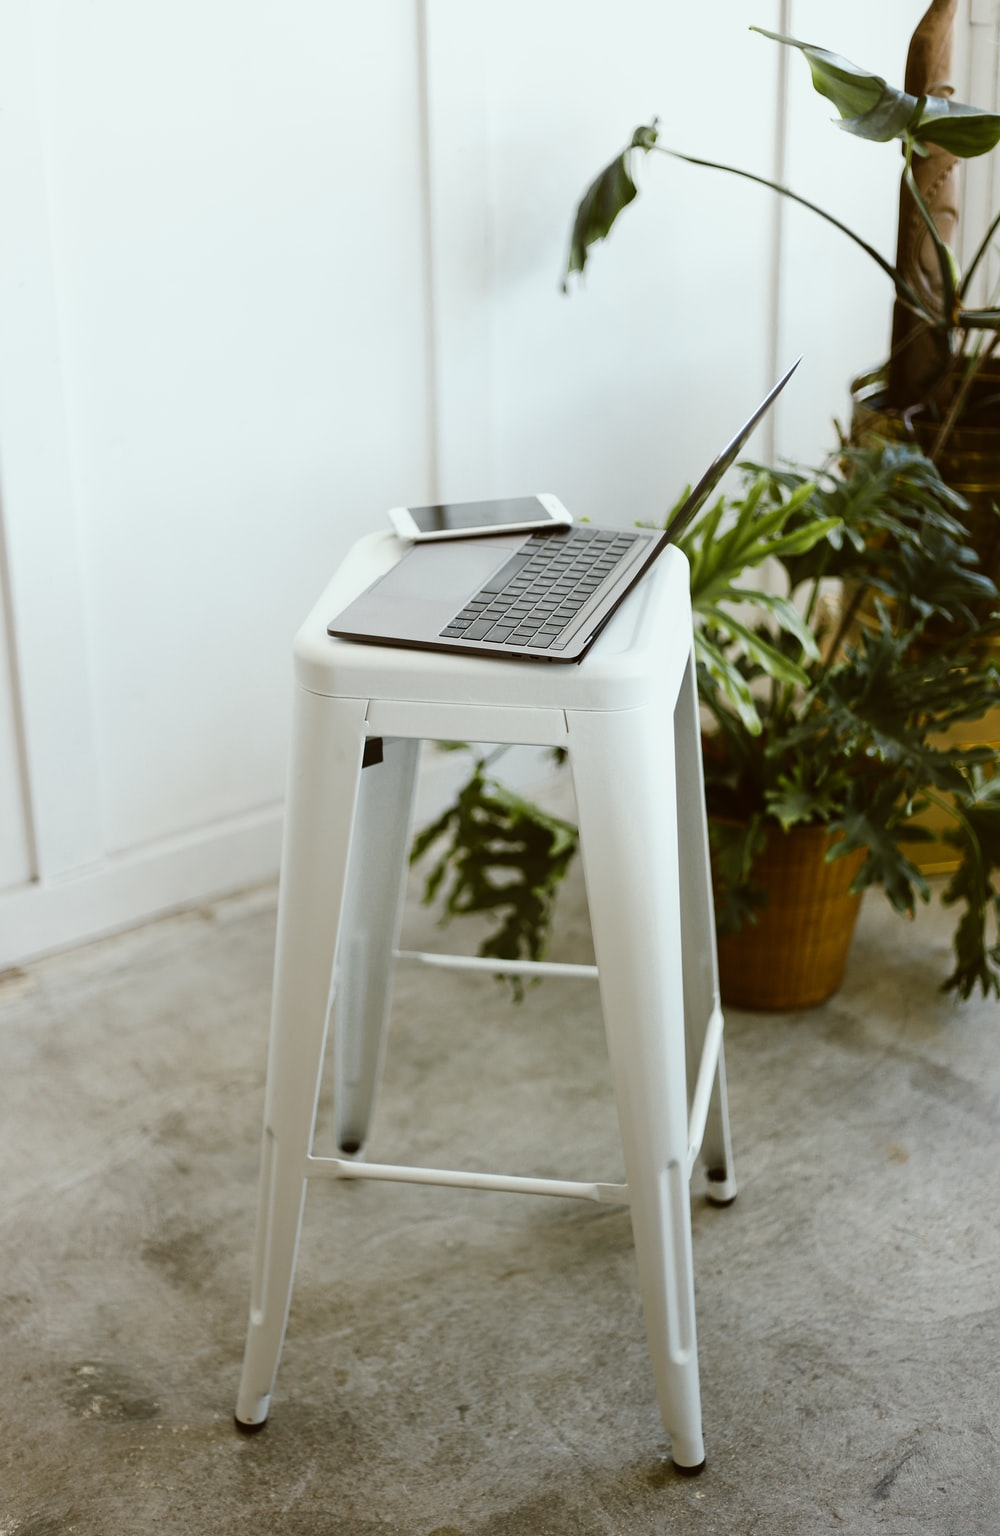 macbook pro on white plastic stool